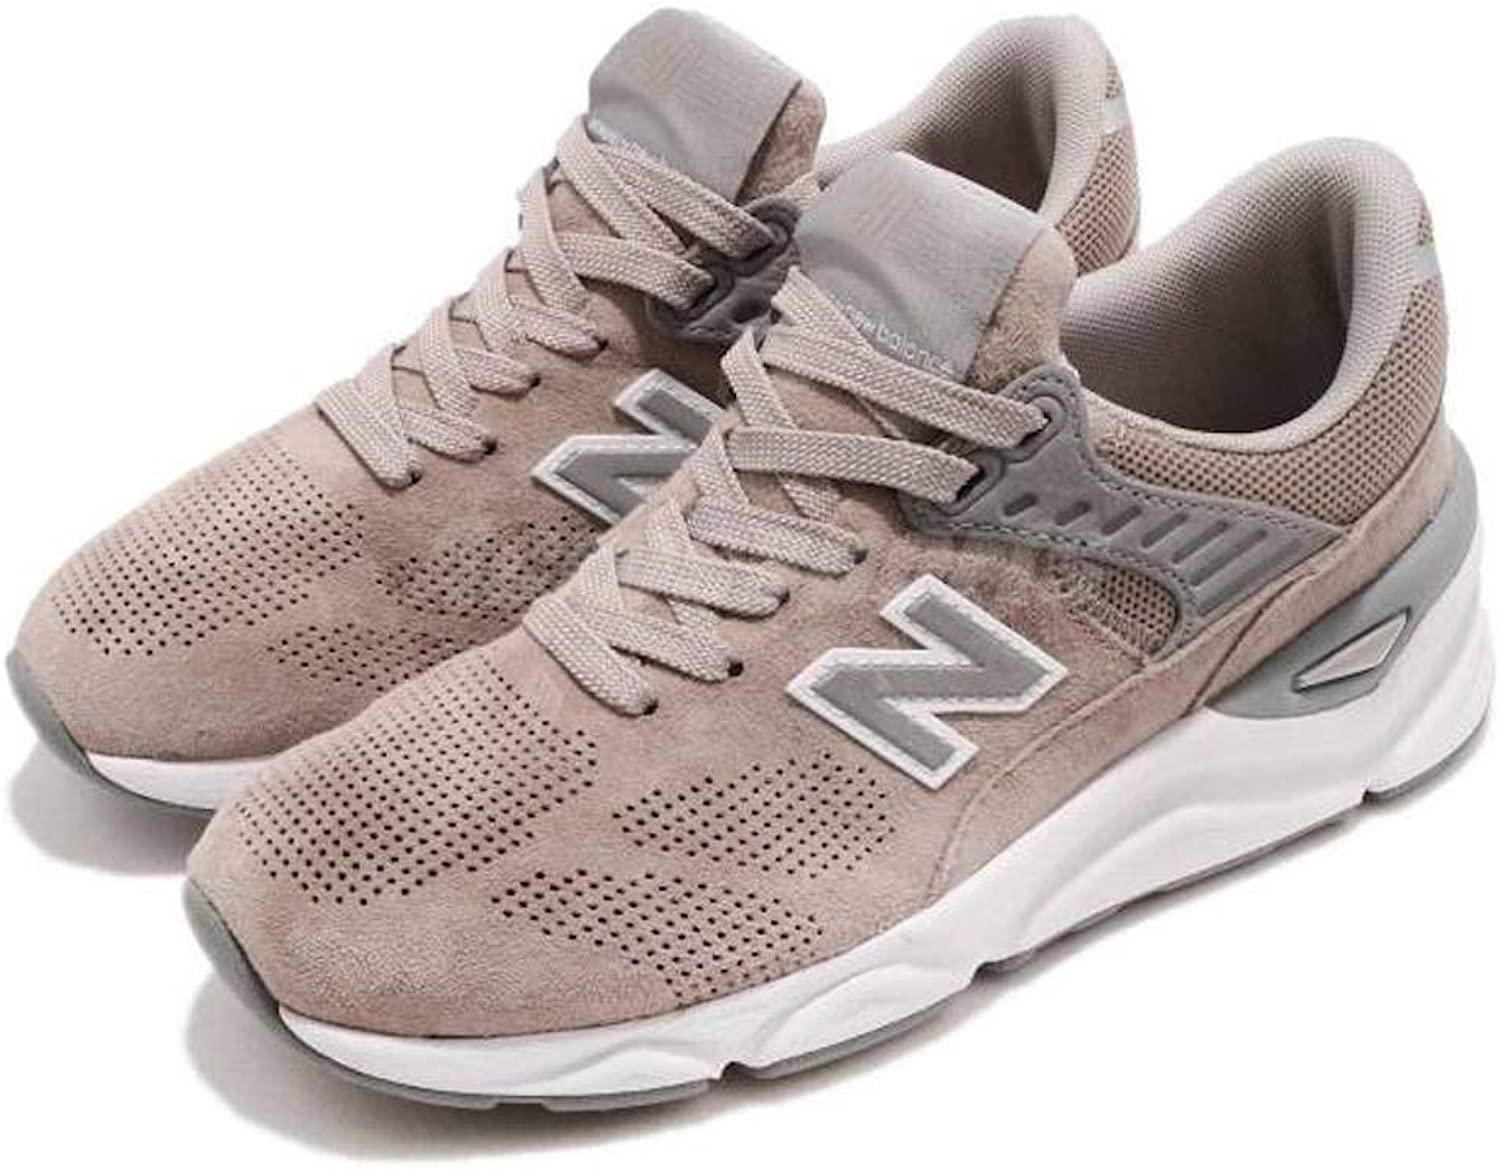 New Balance Womens Lifestyle X-90 Fabric Low Top Lace Up Walking shoes